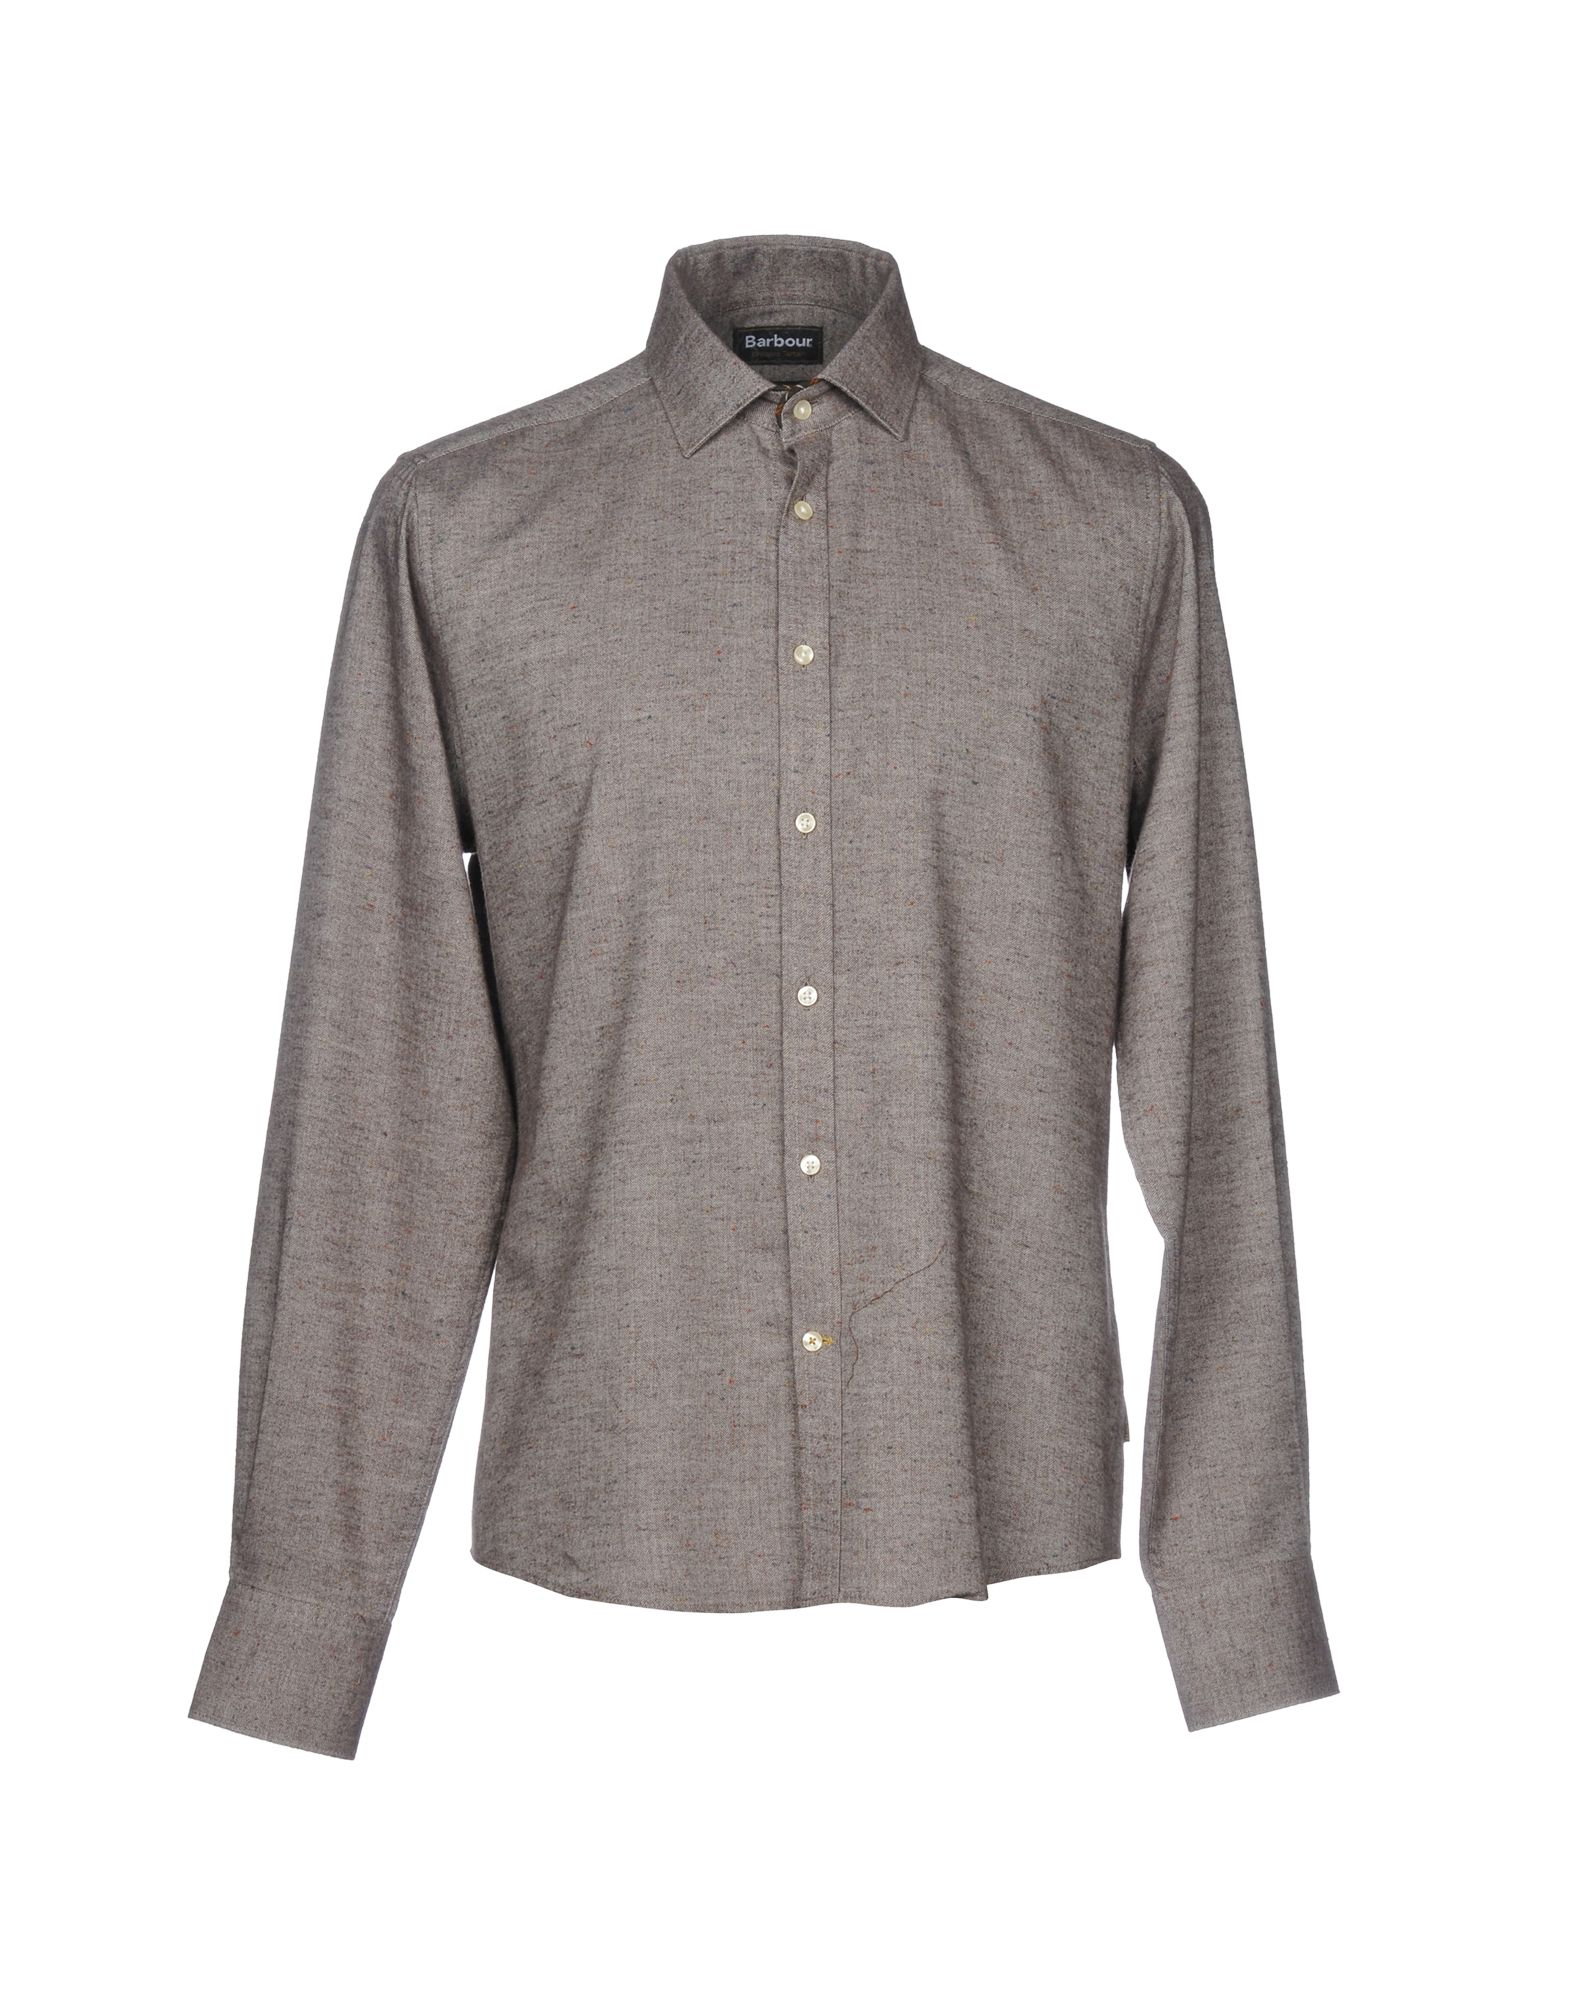 BARBOUR Pубашка 1 2 shank 22 5 degree chamfer